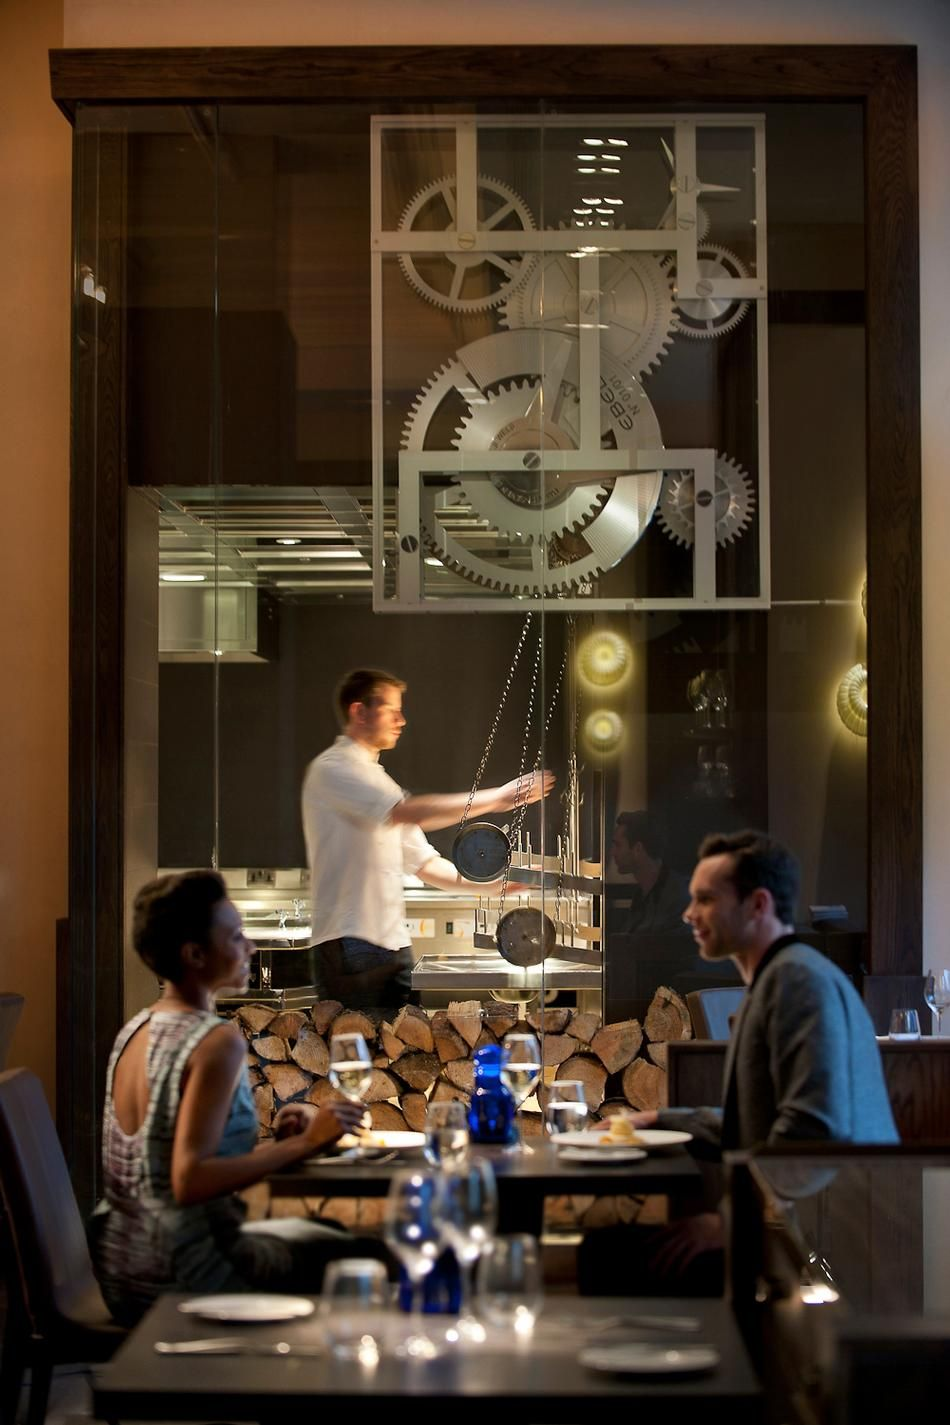 40th celebrations Dinner by Heston Blumenthal - London For Old English style cuisine with a modern twist, visit Dinner by Heston Blumenthal (66 Knightsbridge, Knightsbridge; +44 020/7201-3833) at the Mandarin Oriental